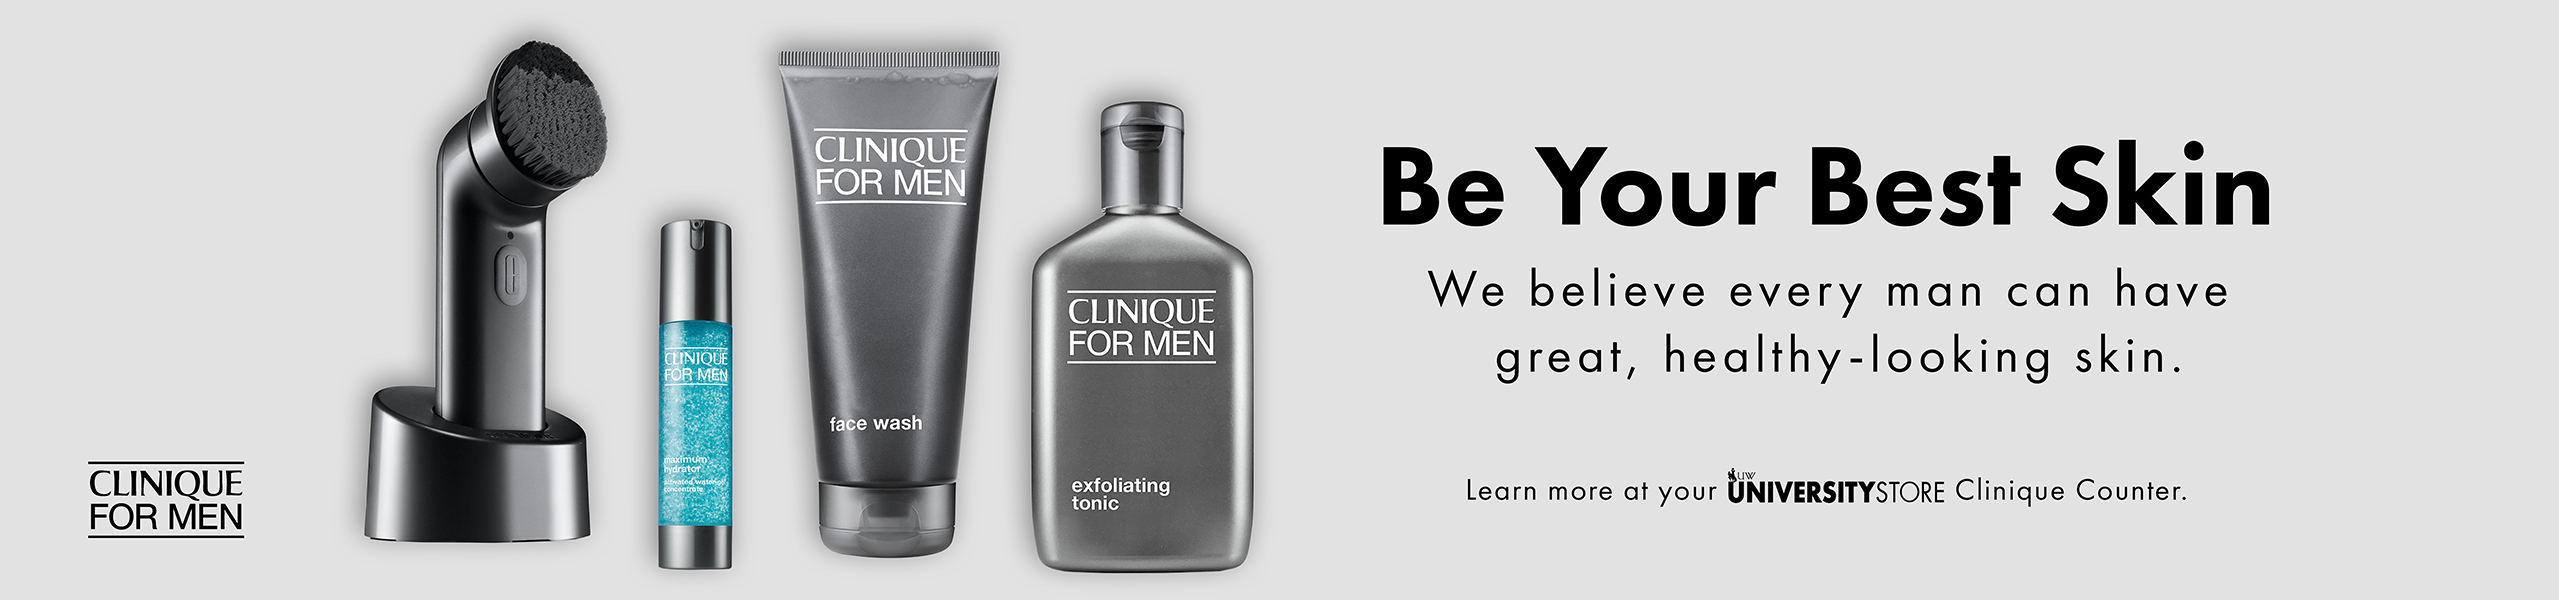 Come Check out Clinique's line for men!